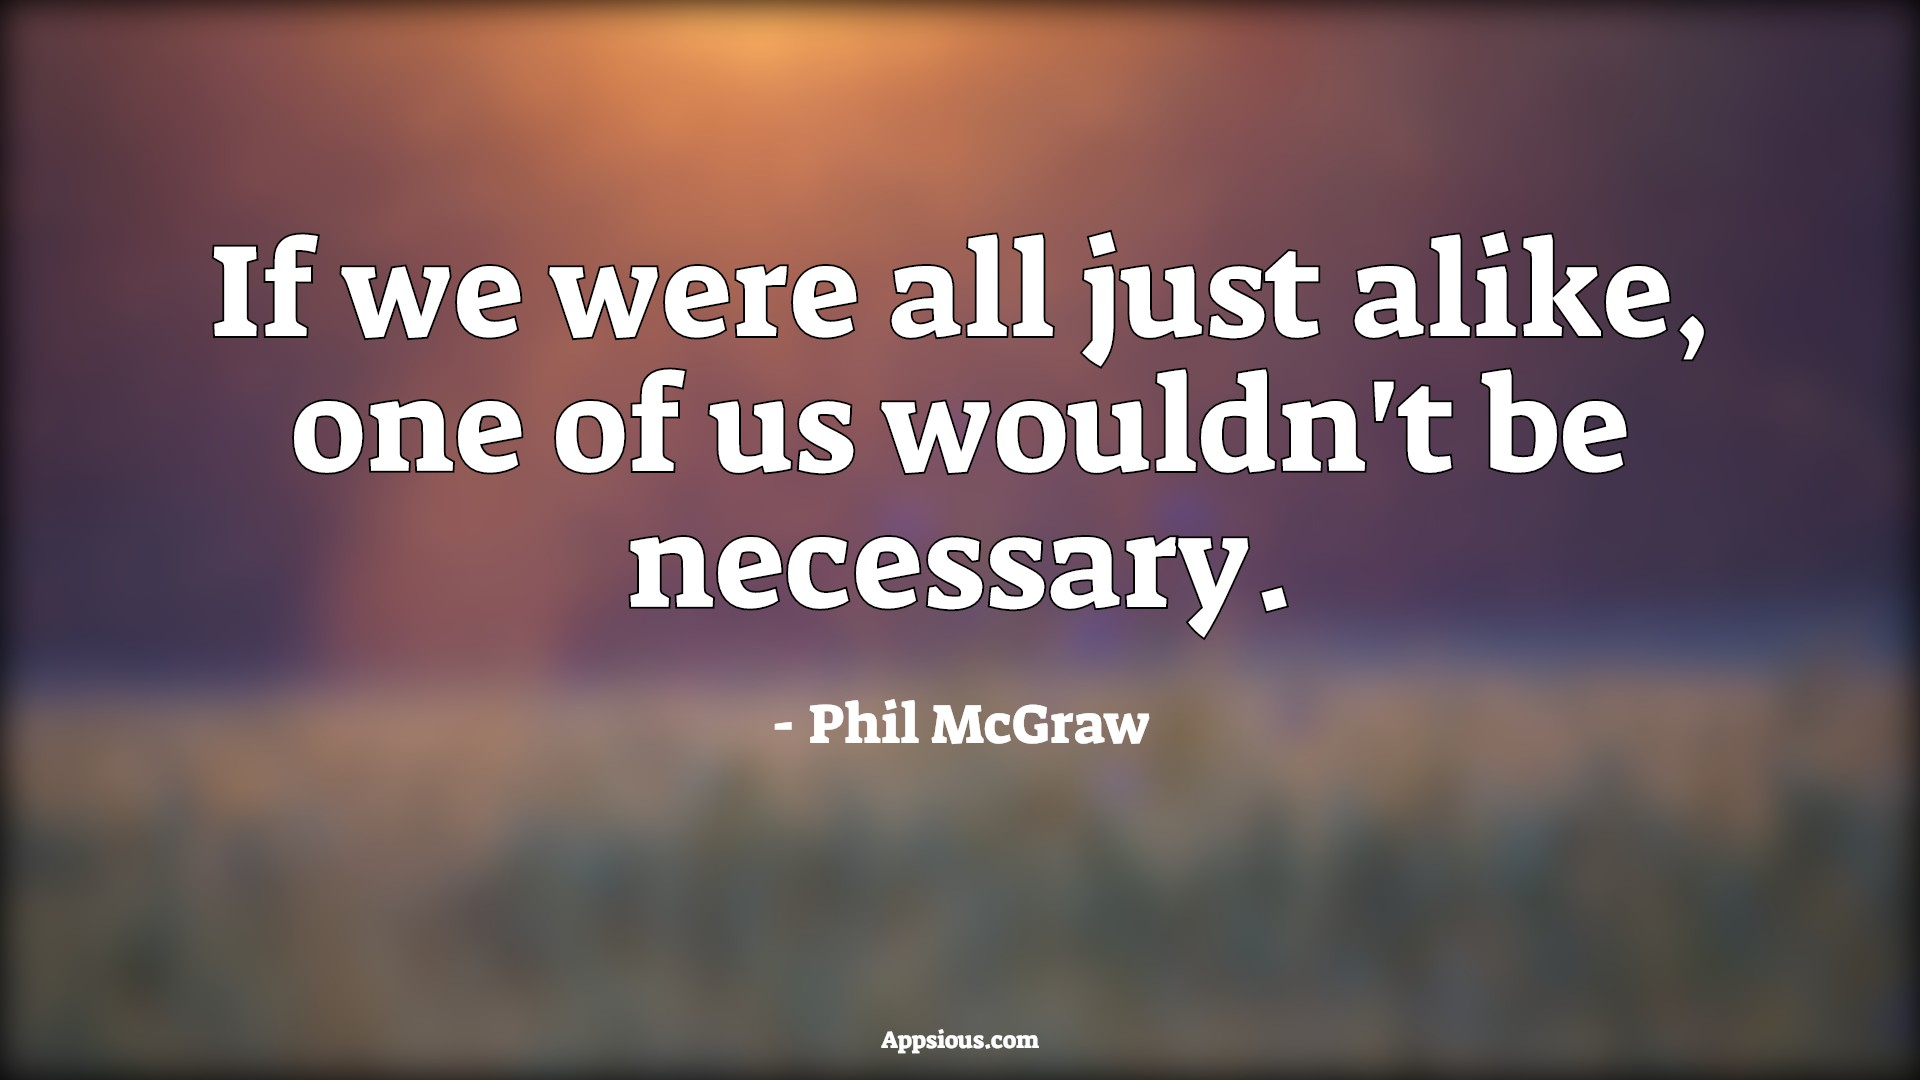 If we were all just alike, one of us wouldn't be necessary.